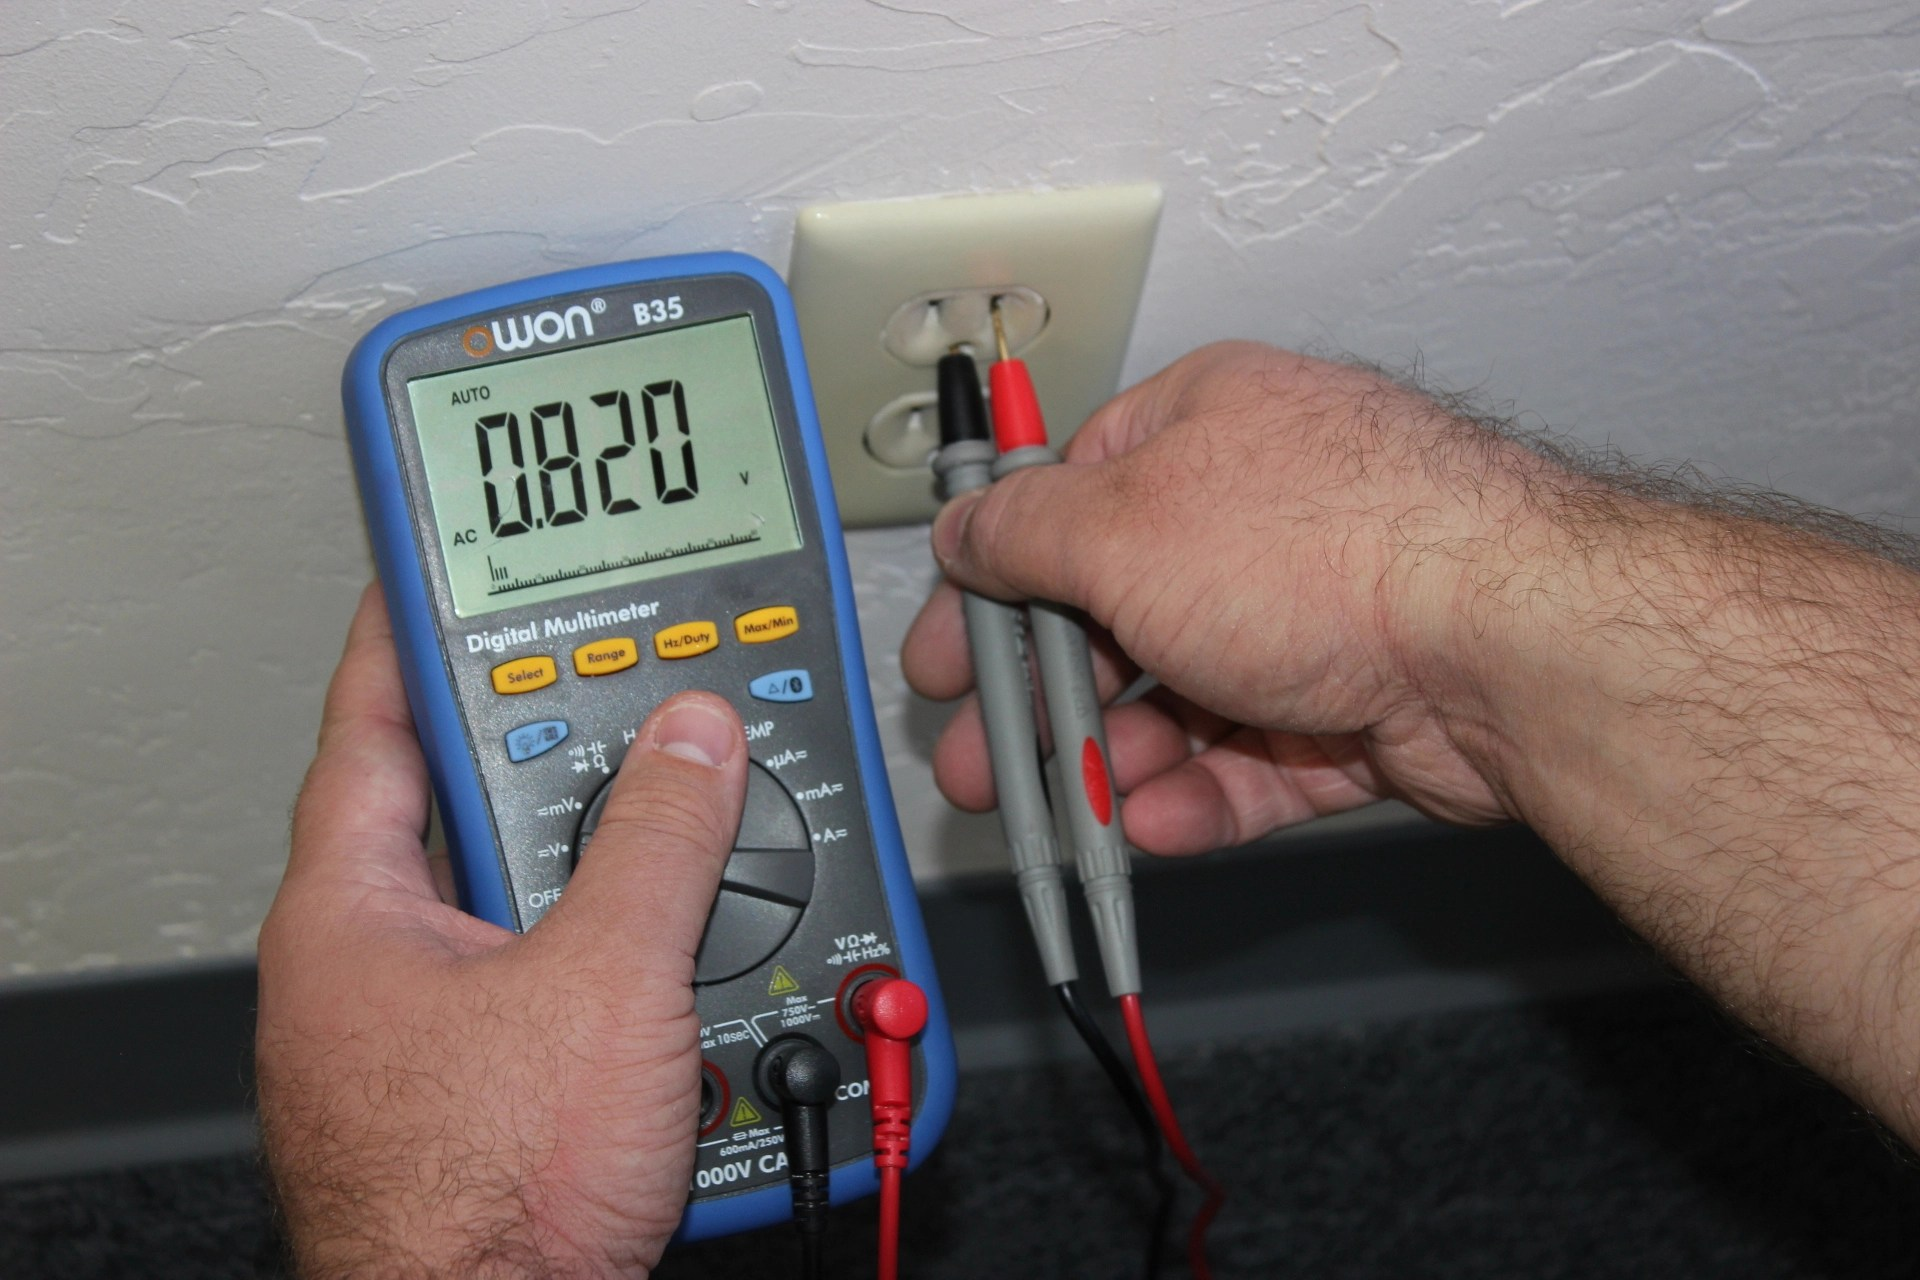 Testing An Electrical Outlet Using A Digital Multimeter Simply Ac Electric Plug Wiring This Section Of The Is Ground And You Will Soon See Voltage Reading If No Displayed May Have Blown Fuse Or